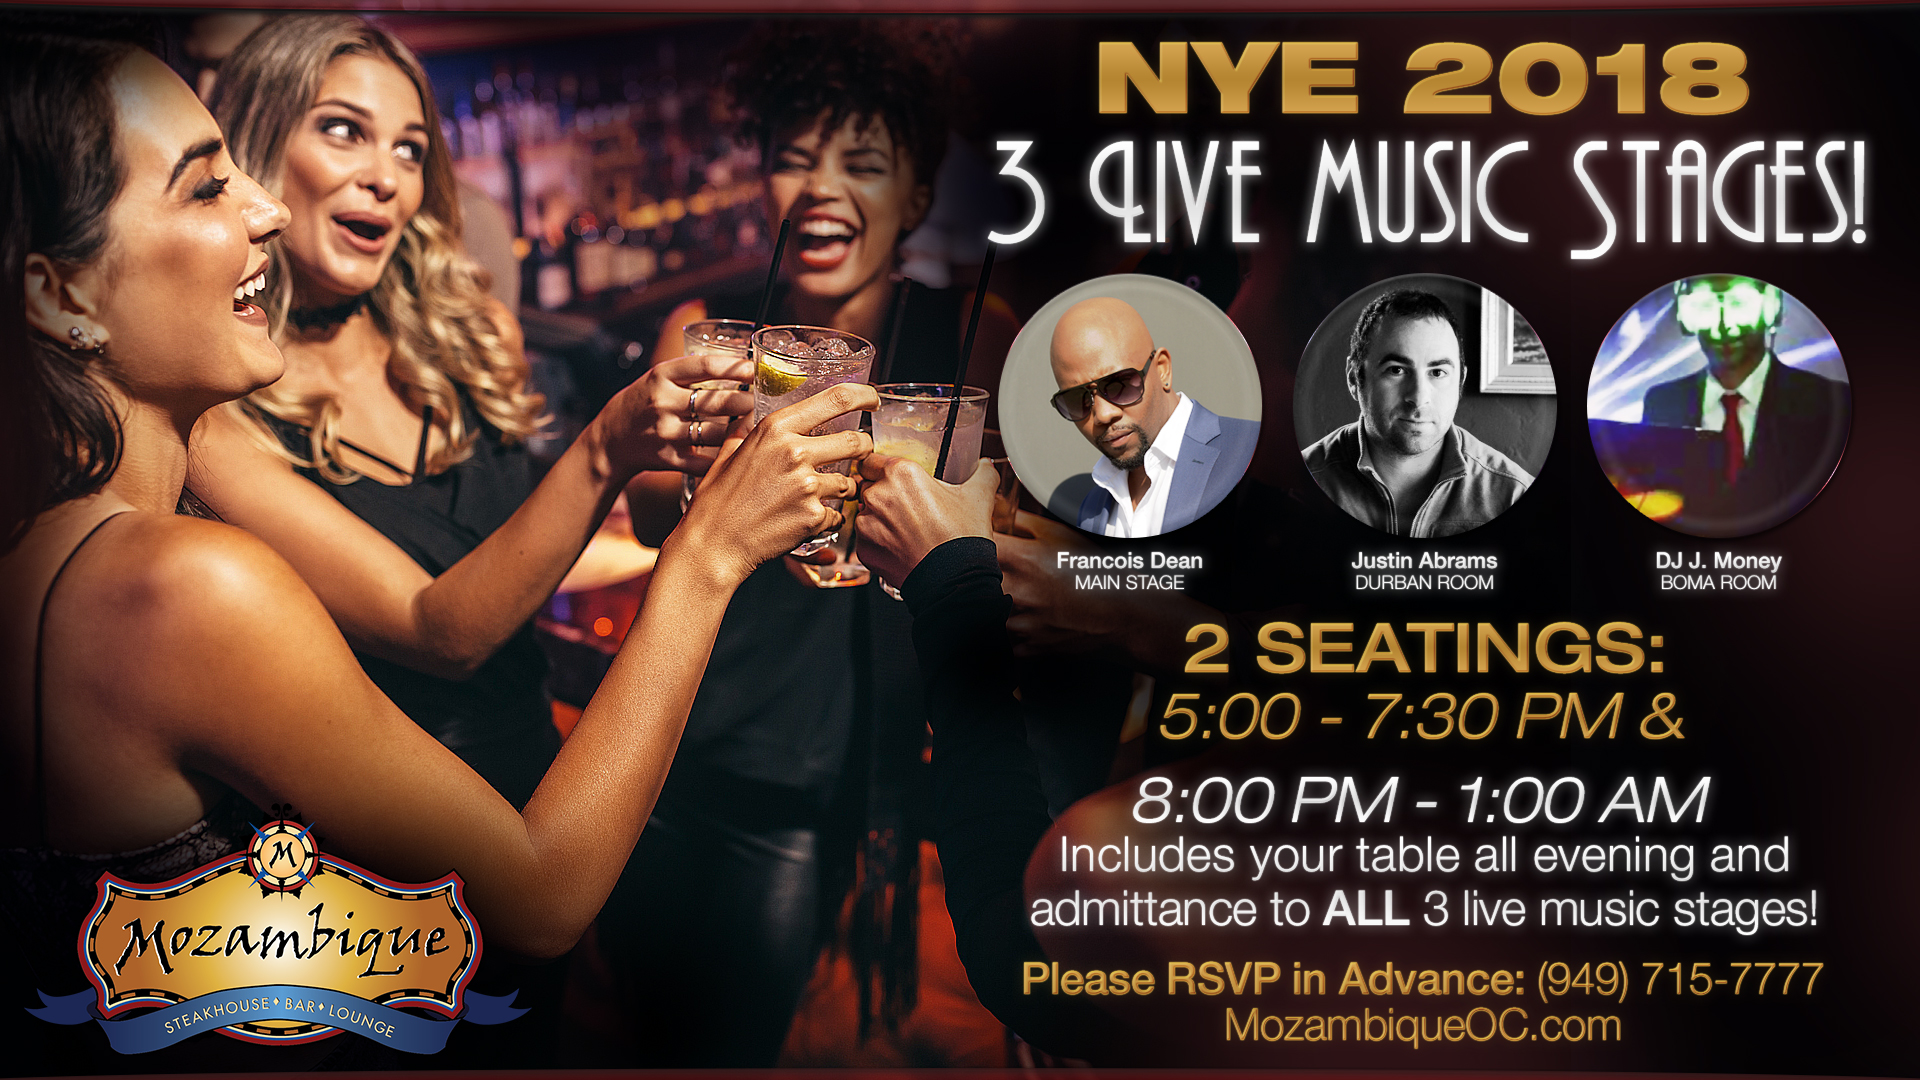 New Years Eve, 2018. 3 Live Music Stages. Francois Dean on the Main Stage. Justin Abrams in the Durban Room. DJ J Money in the Boma Room. We will have two Seatings. The first is from 5 PM to 7:30 PM. The Second is from 8 PM to 1 AM. The Second Seating includes your table all evening and admittance to all 3 live music stages. Please RSVP in Advance by calling 949-715-7777